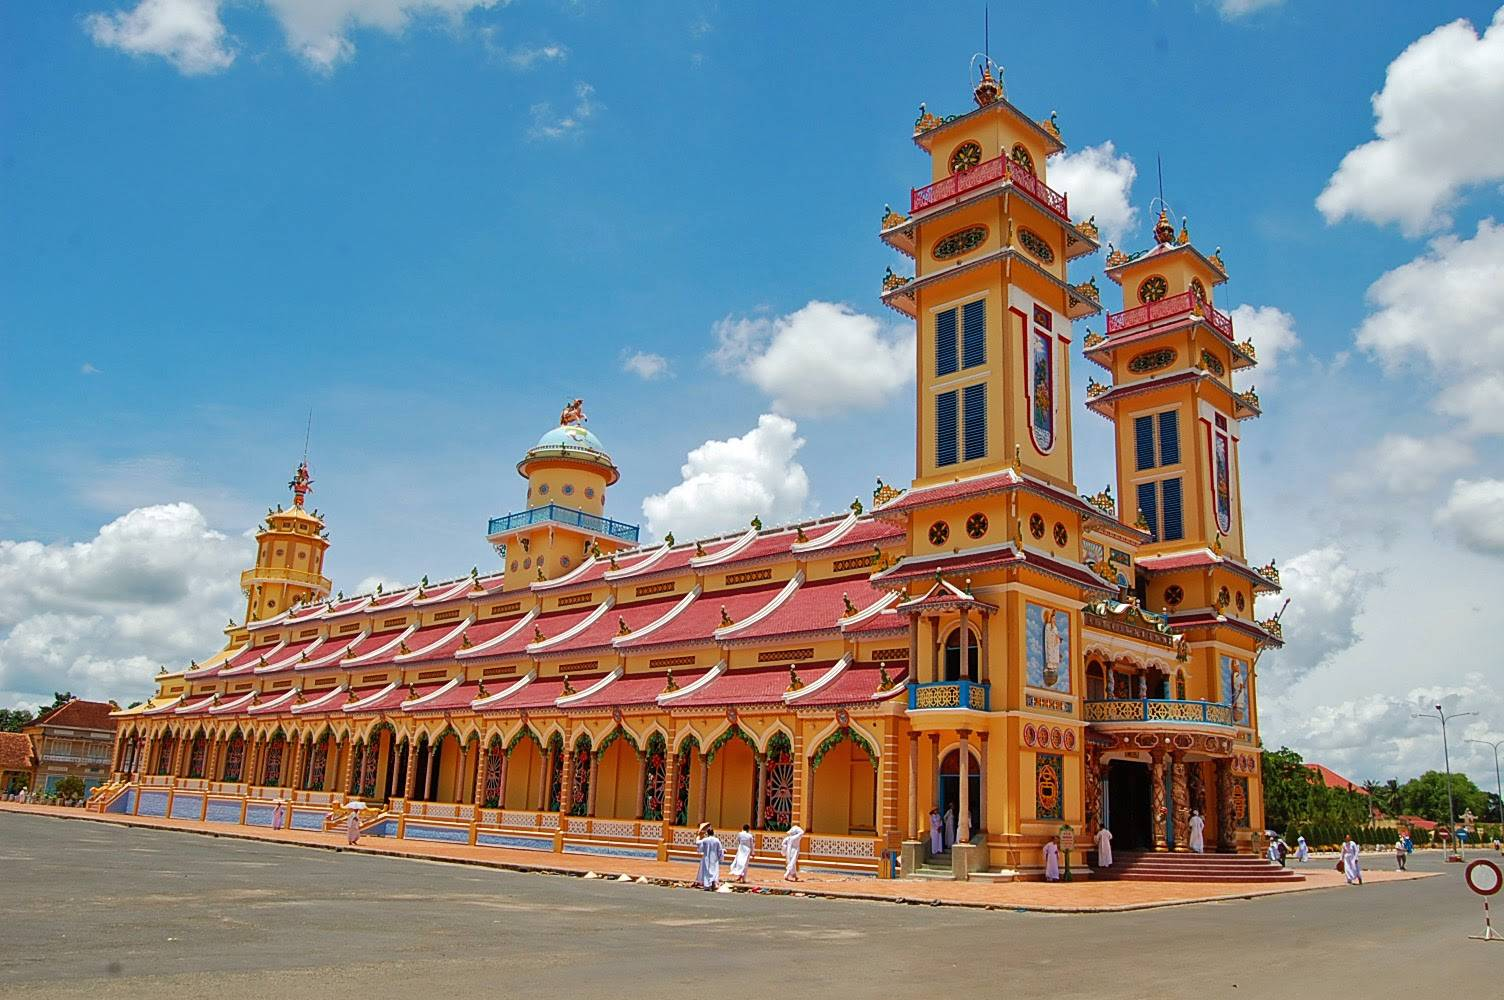 cao dai temple - THE TOP 5 Ho Chi Minh City Shore Excursions